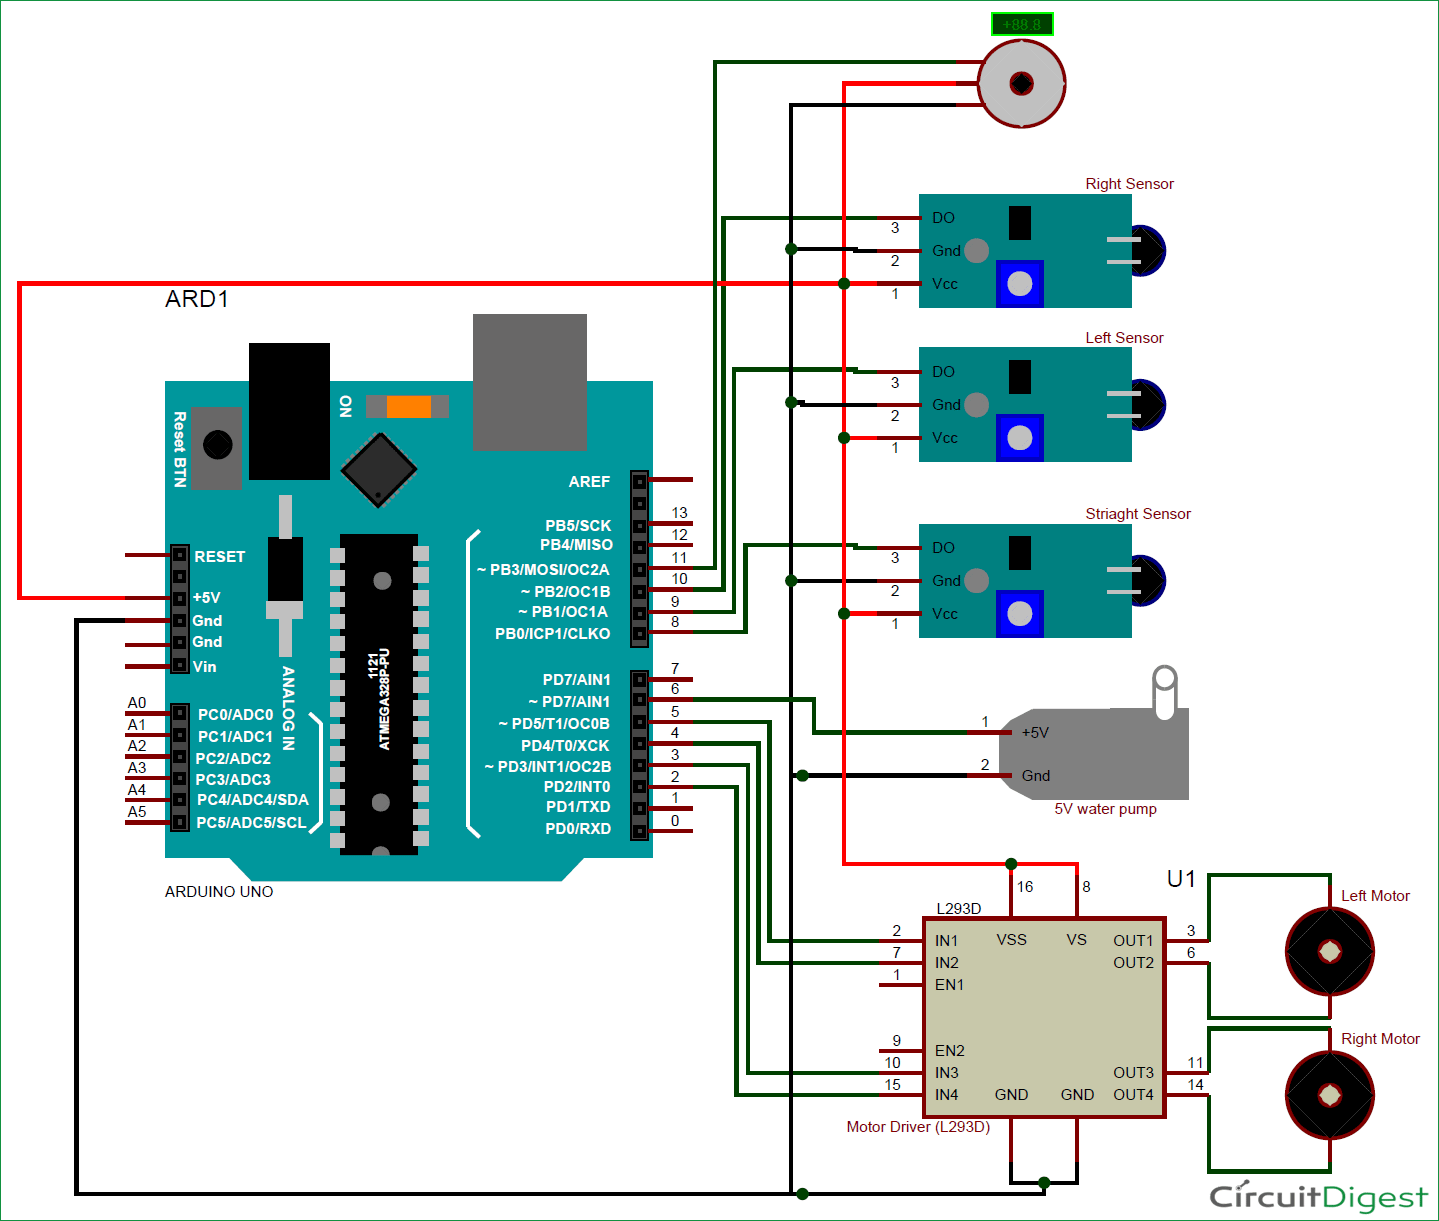 Diy Arduino Based Fire Fighting Robot Project With Code And Circuit Adjustable Timer 555 Ic P Marian Timers Diagram